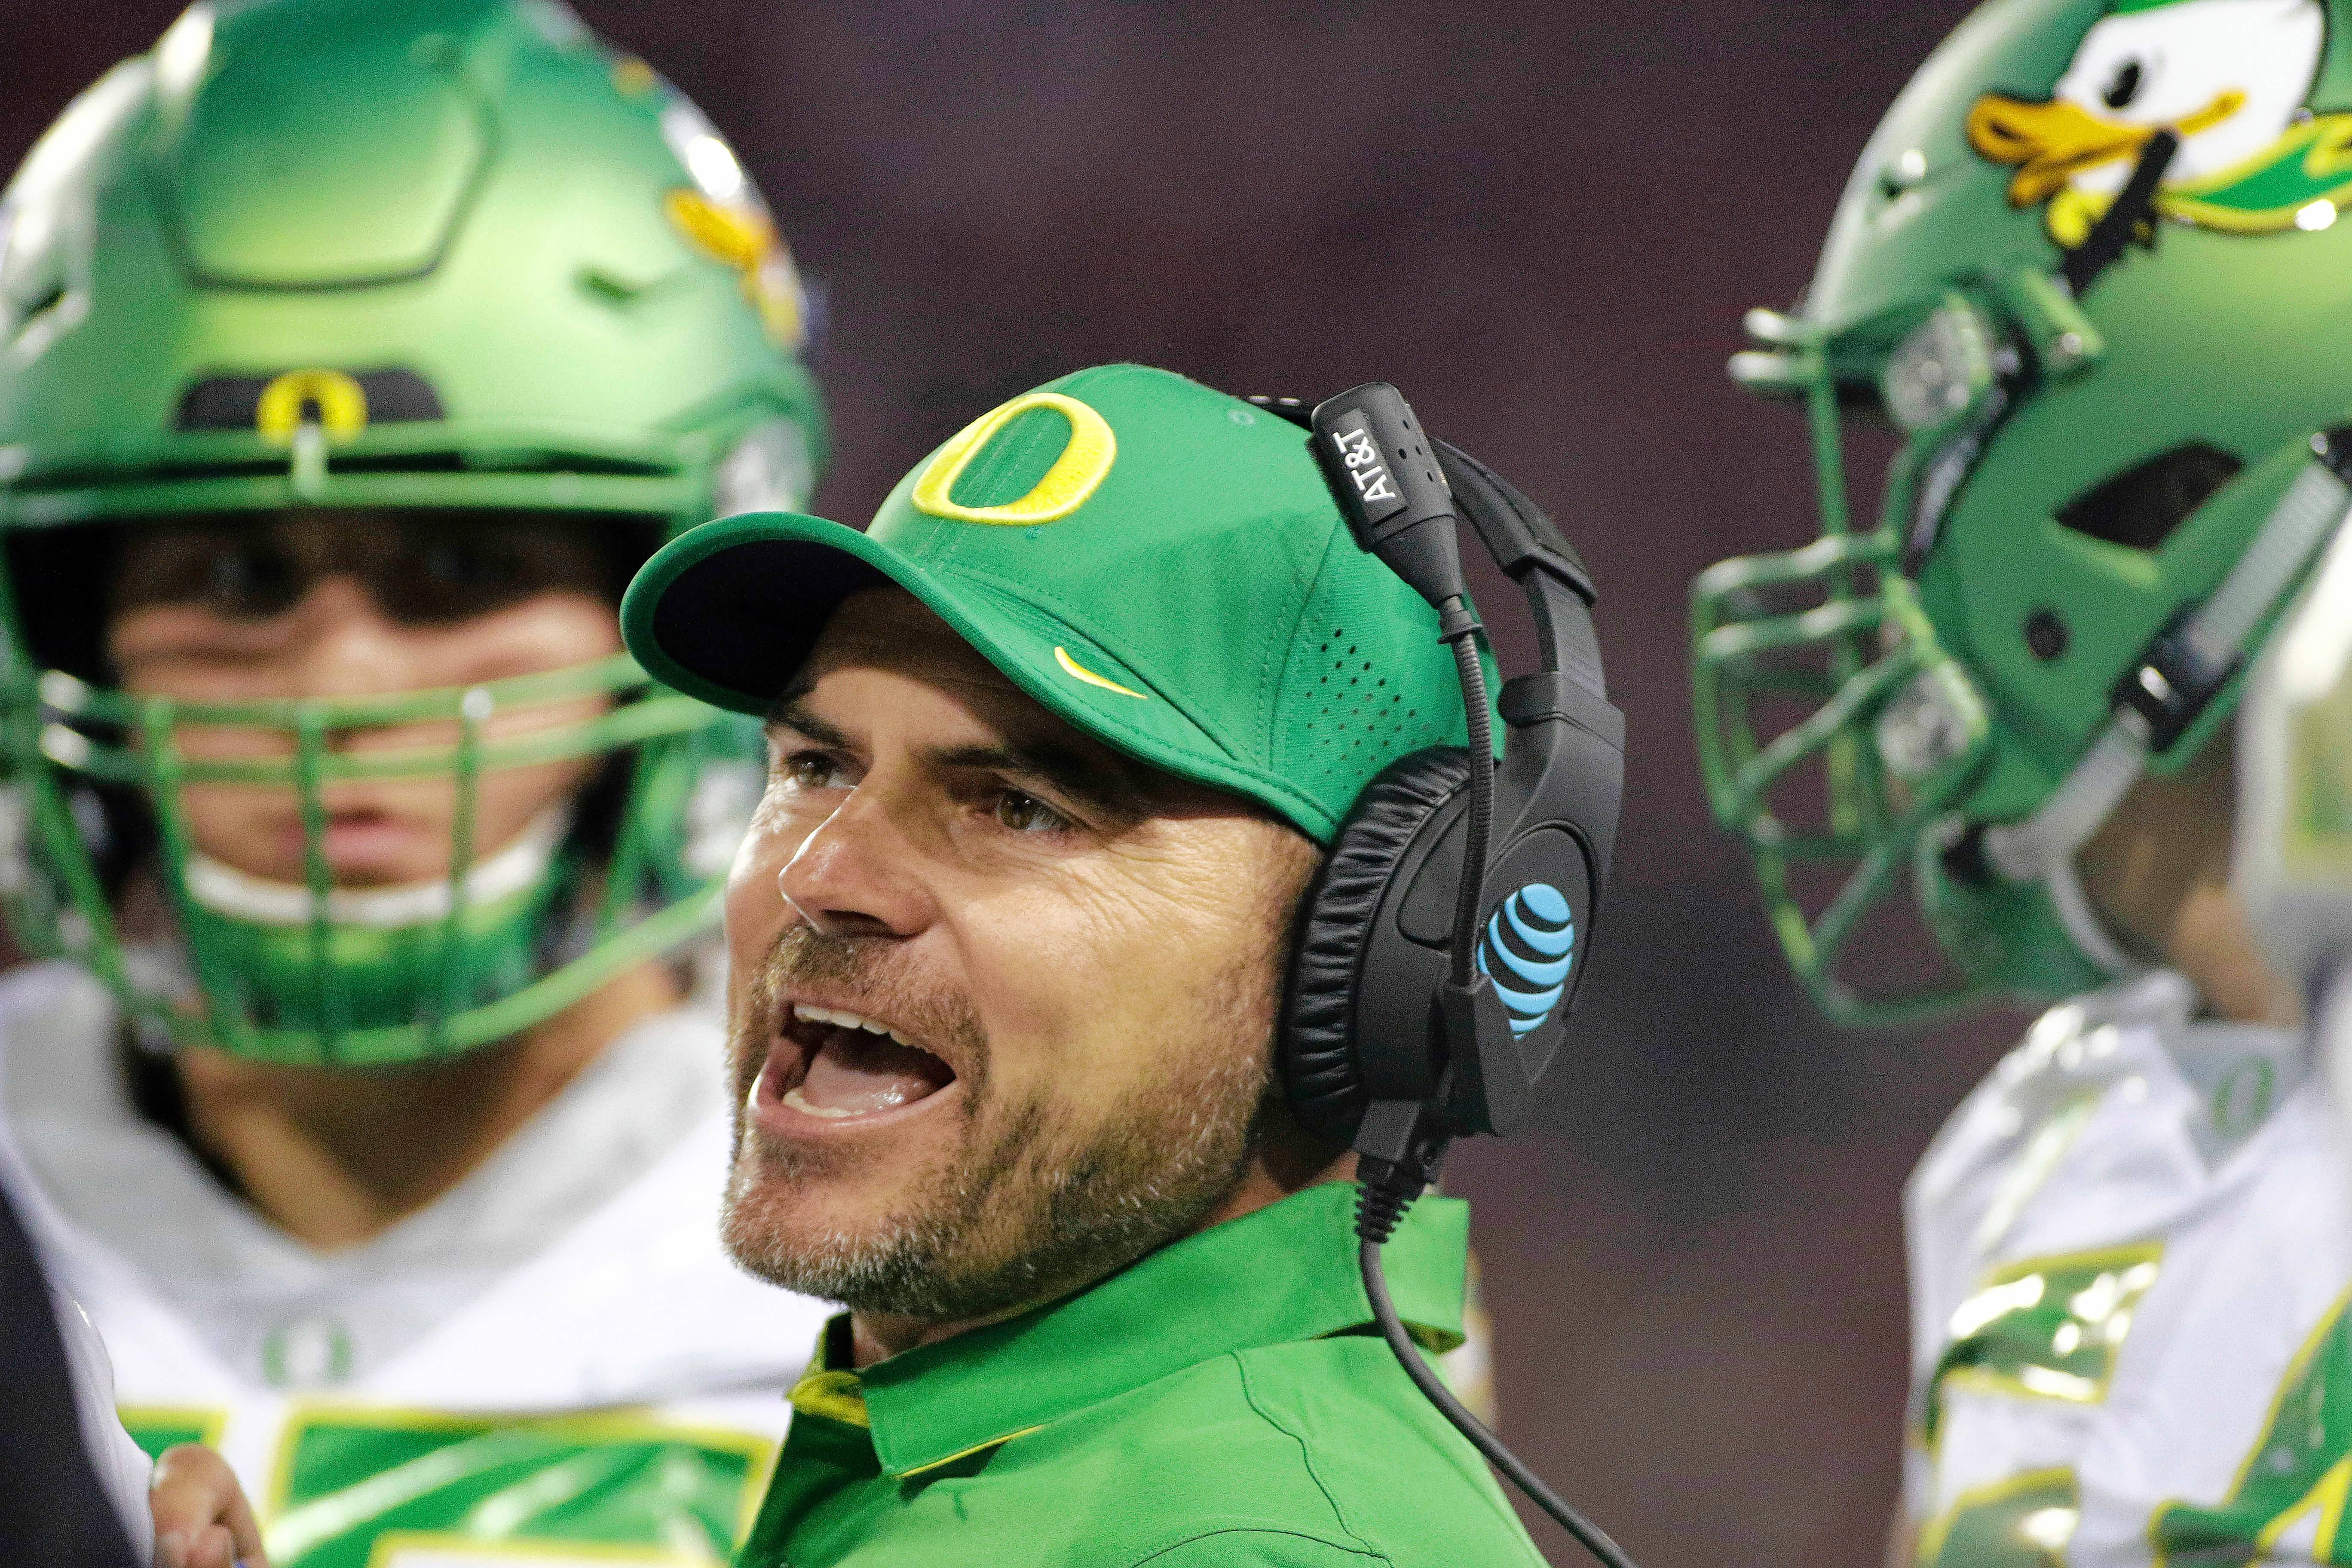 Chicago Bears hire former Oregon coach Helfrich as offensive coordinator